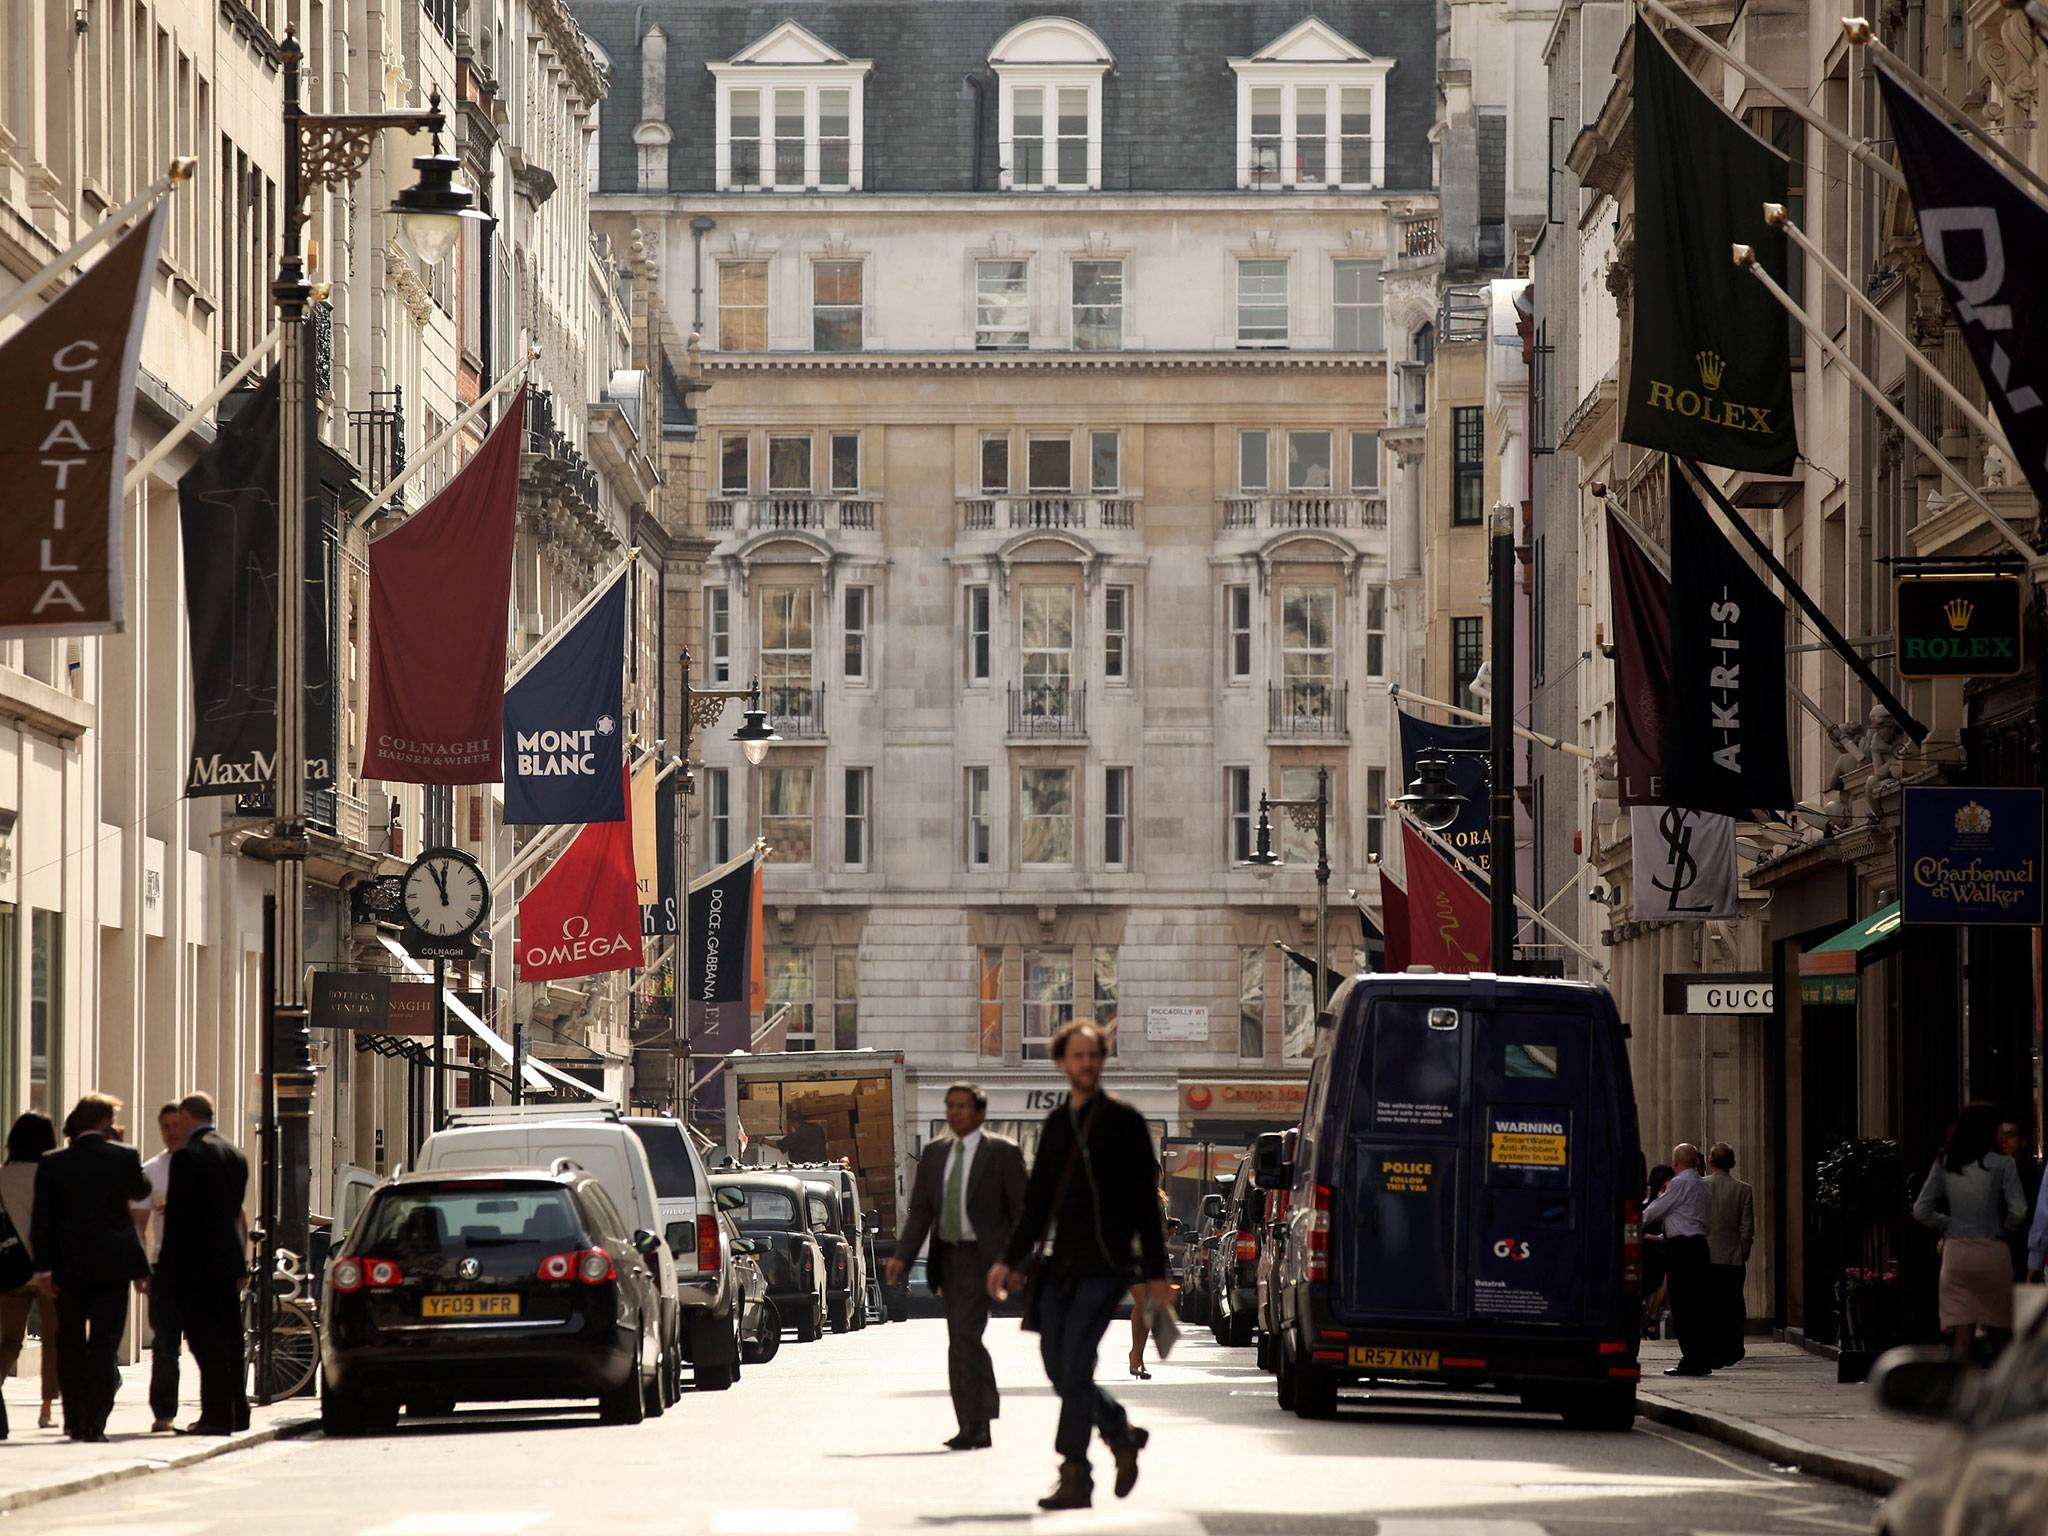 NEW BOND STREET OVERTAKES CHAMPS ÉLYSÉES TO BECOME WORLD'S THIRD MOST EXPENSIVE SHOPPING STREET